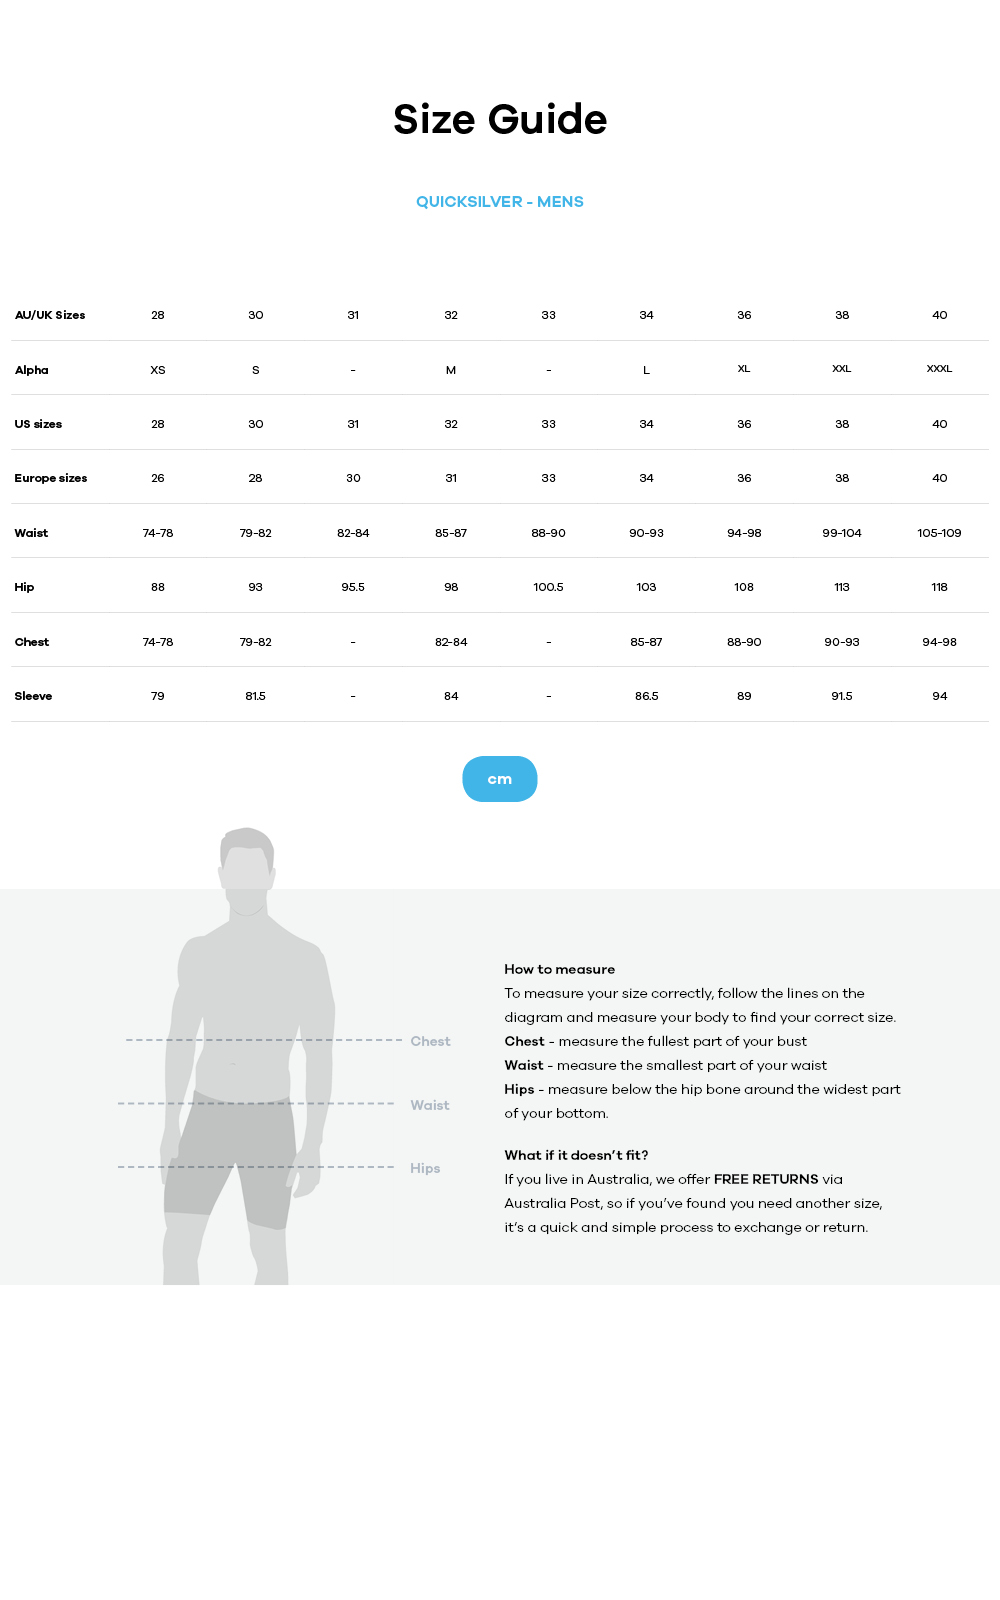 Quiksilver size guide